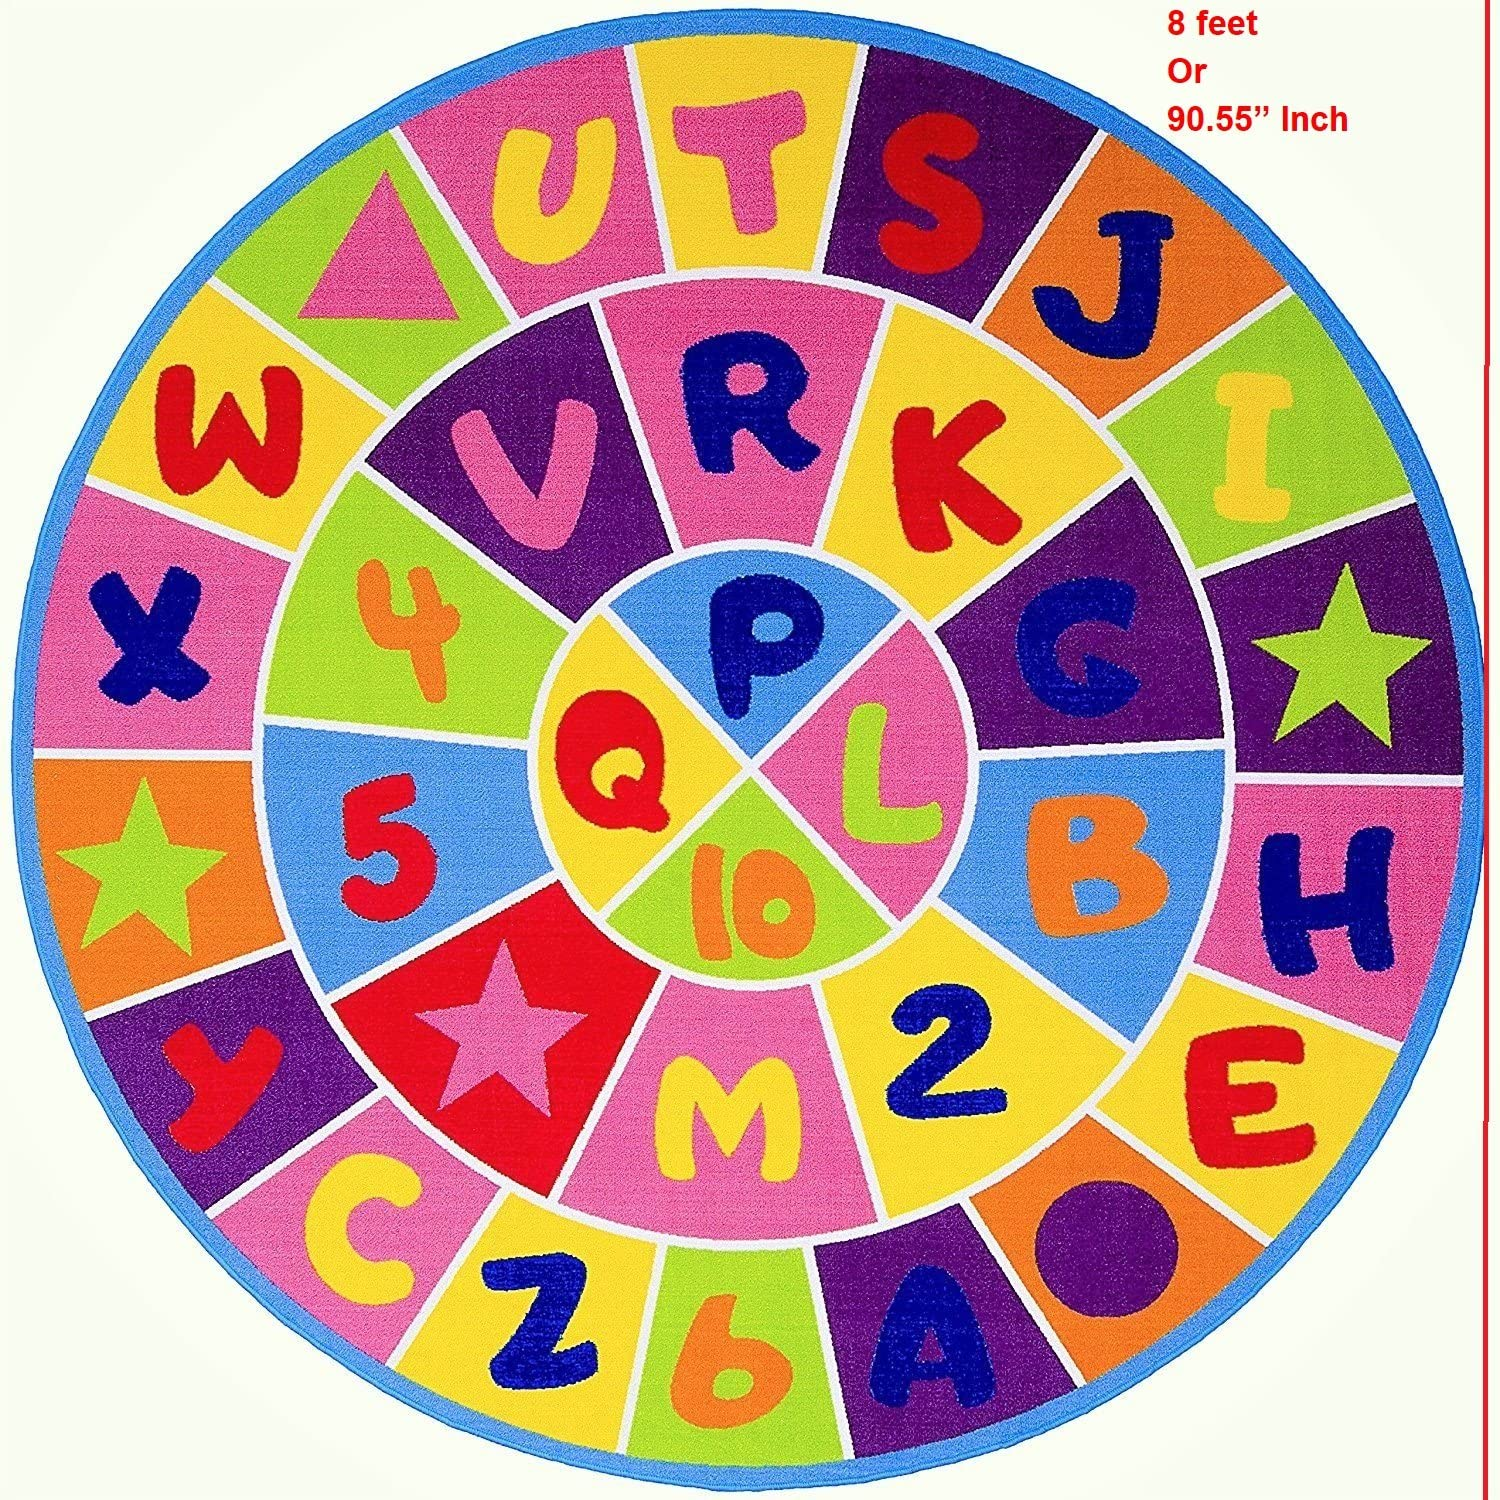 Alphabet and Numbers Kids//Boys//Girls//Children//Toddler Educational Play mat for School//Daycare//Nursery Non-Slip Area Rug Multi